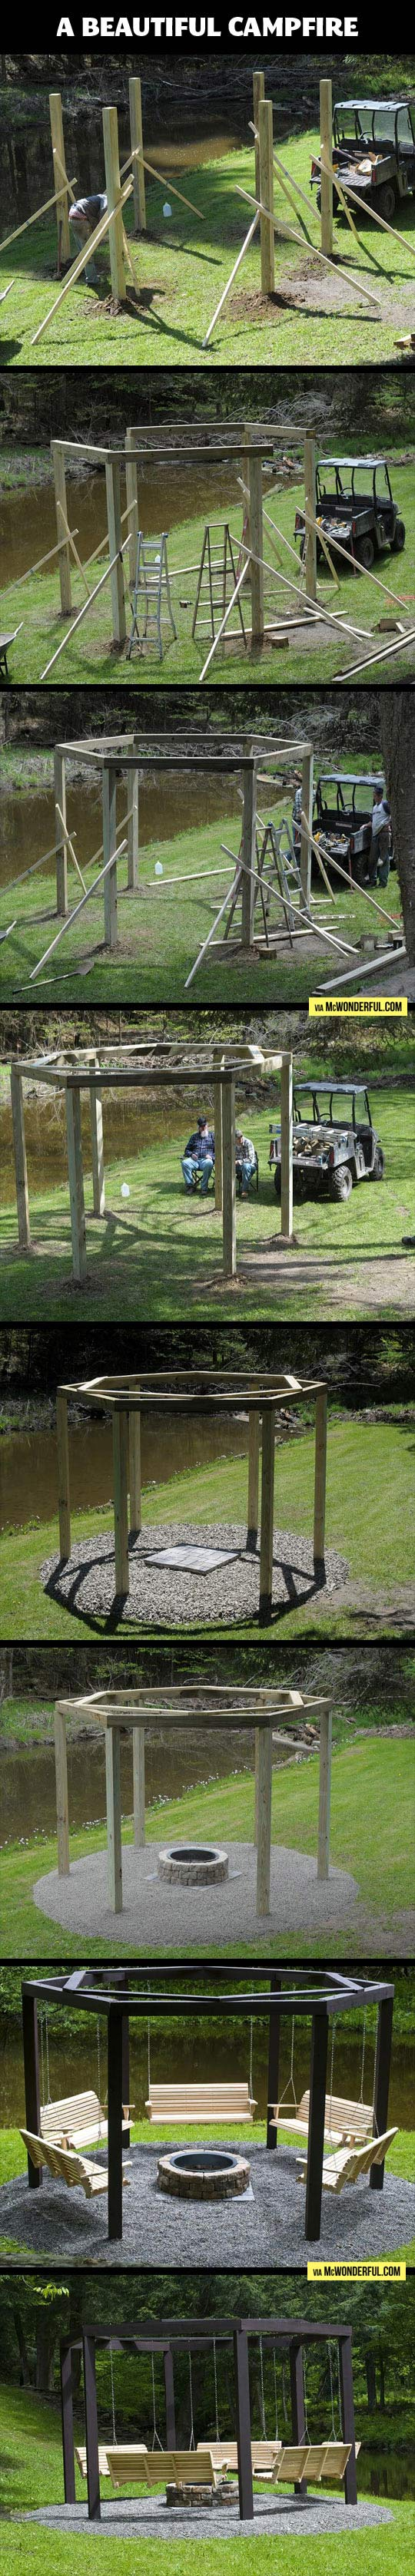 cool-campfire-swings-fire-river